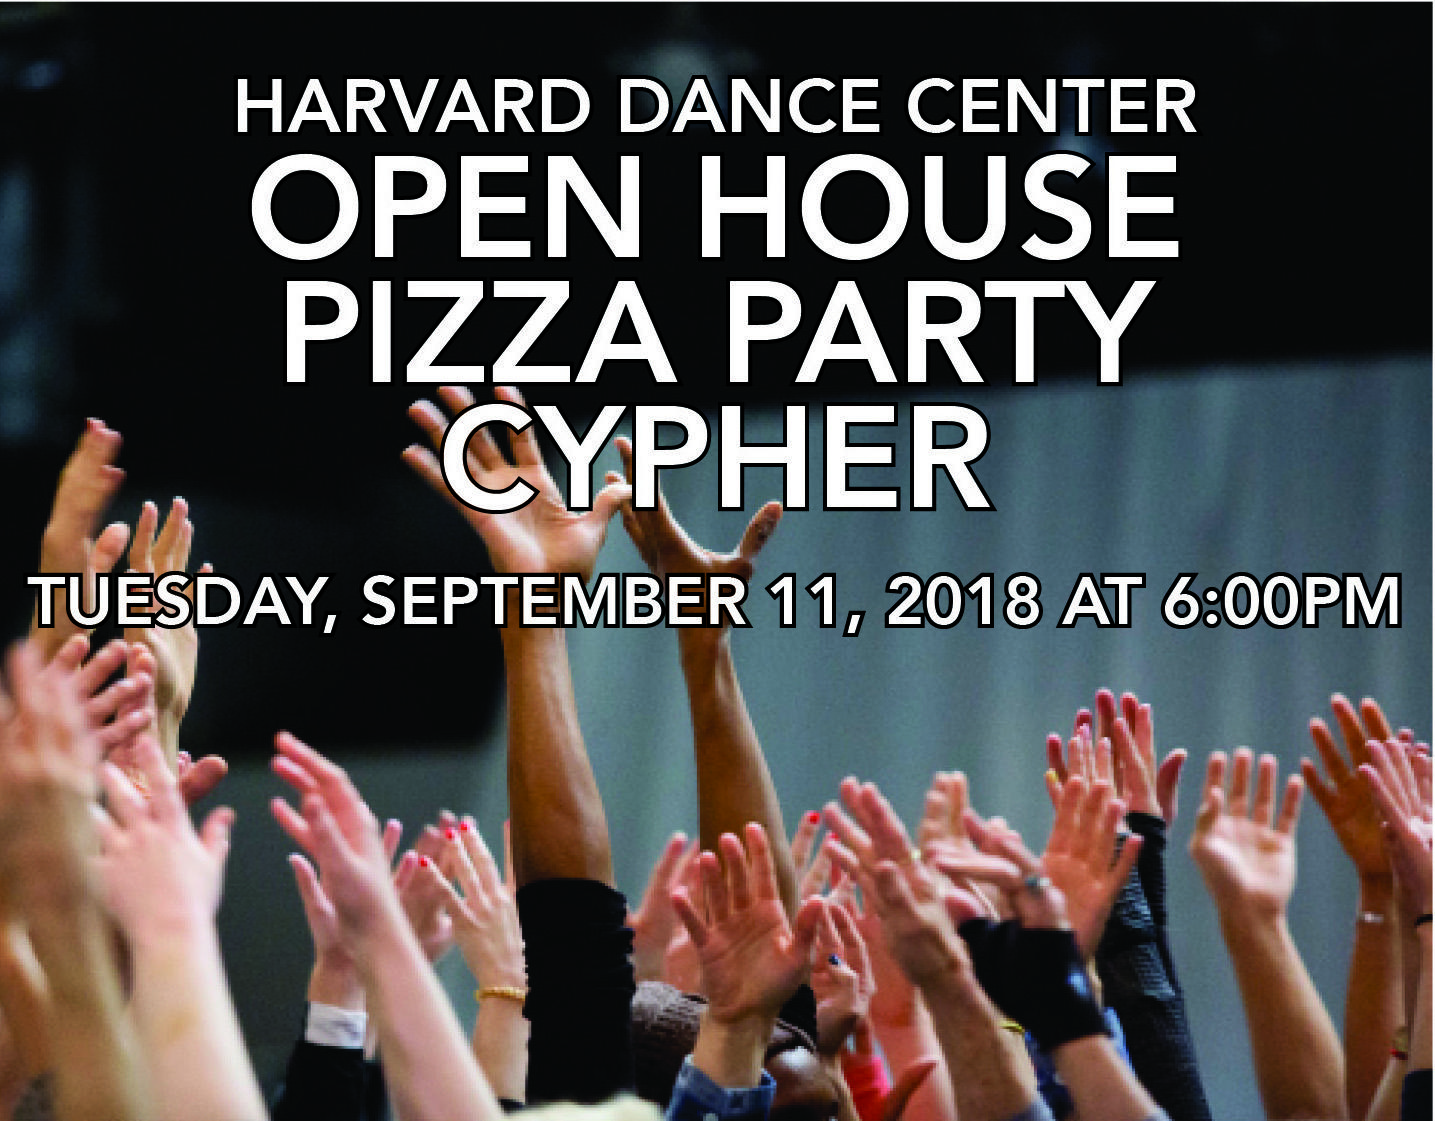 Open House Pizza Party & Cypher